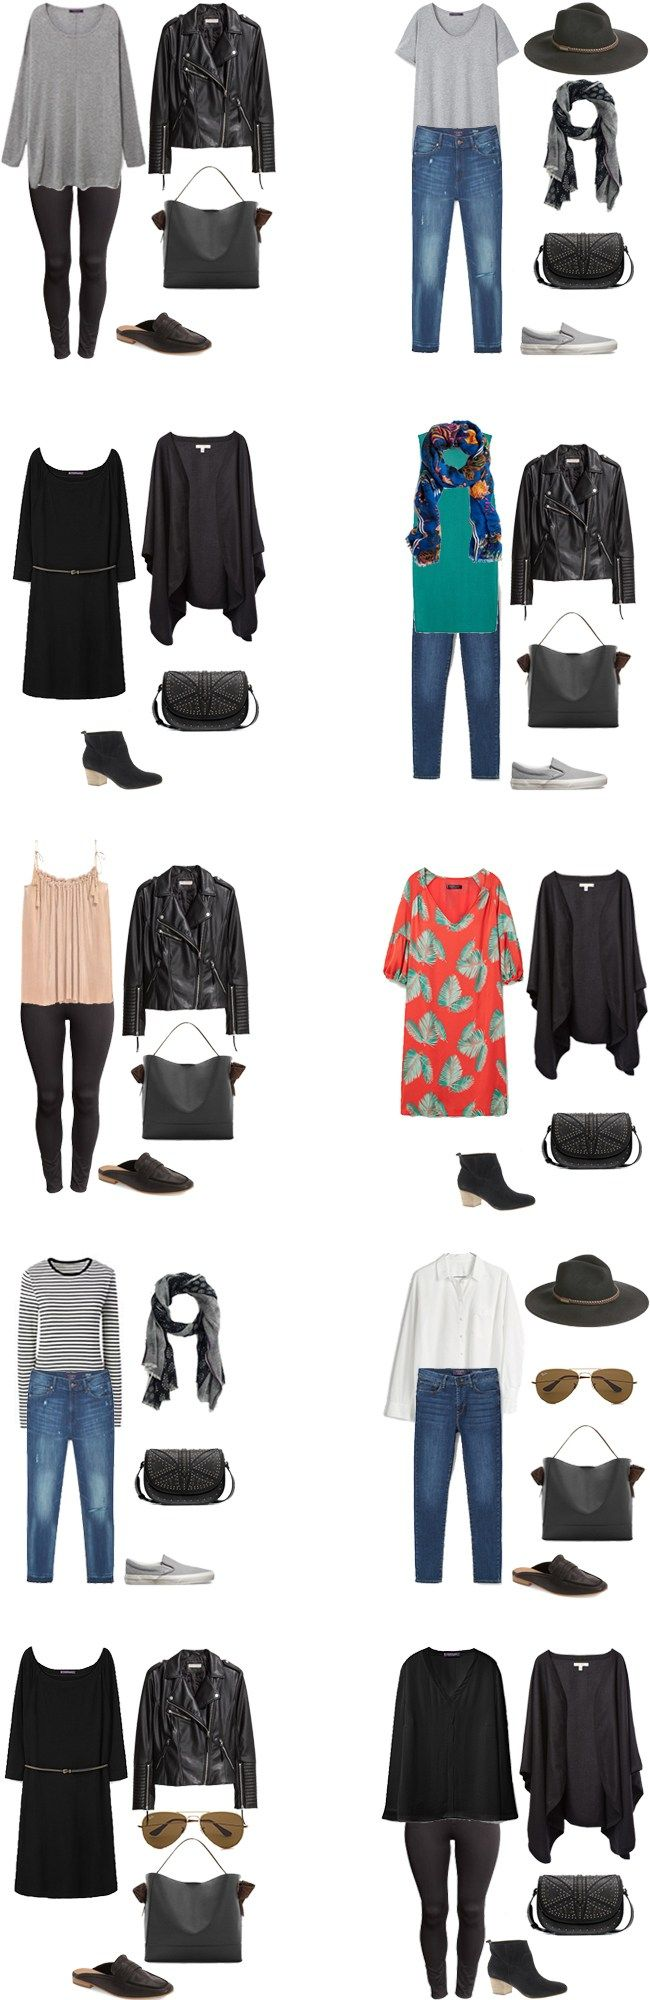 What to Wear in London Paris and Germany Outfit Options 11-20 #travellight #packinglight #traveltips #travel